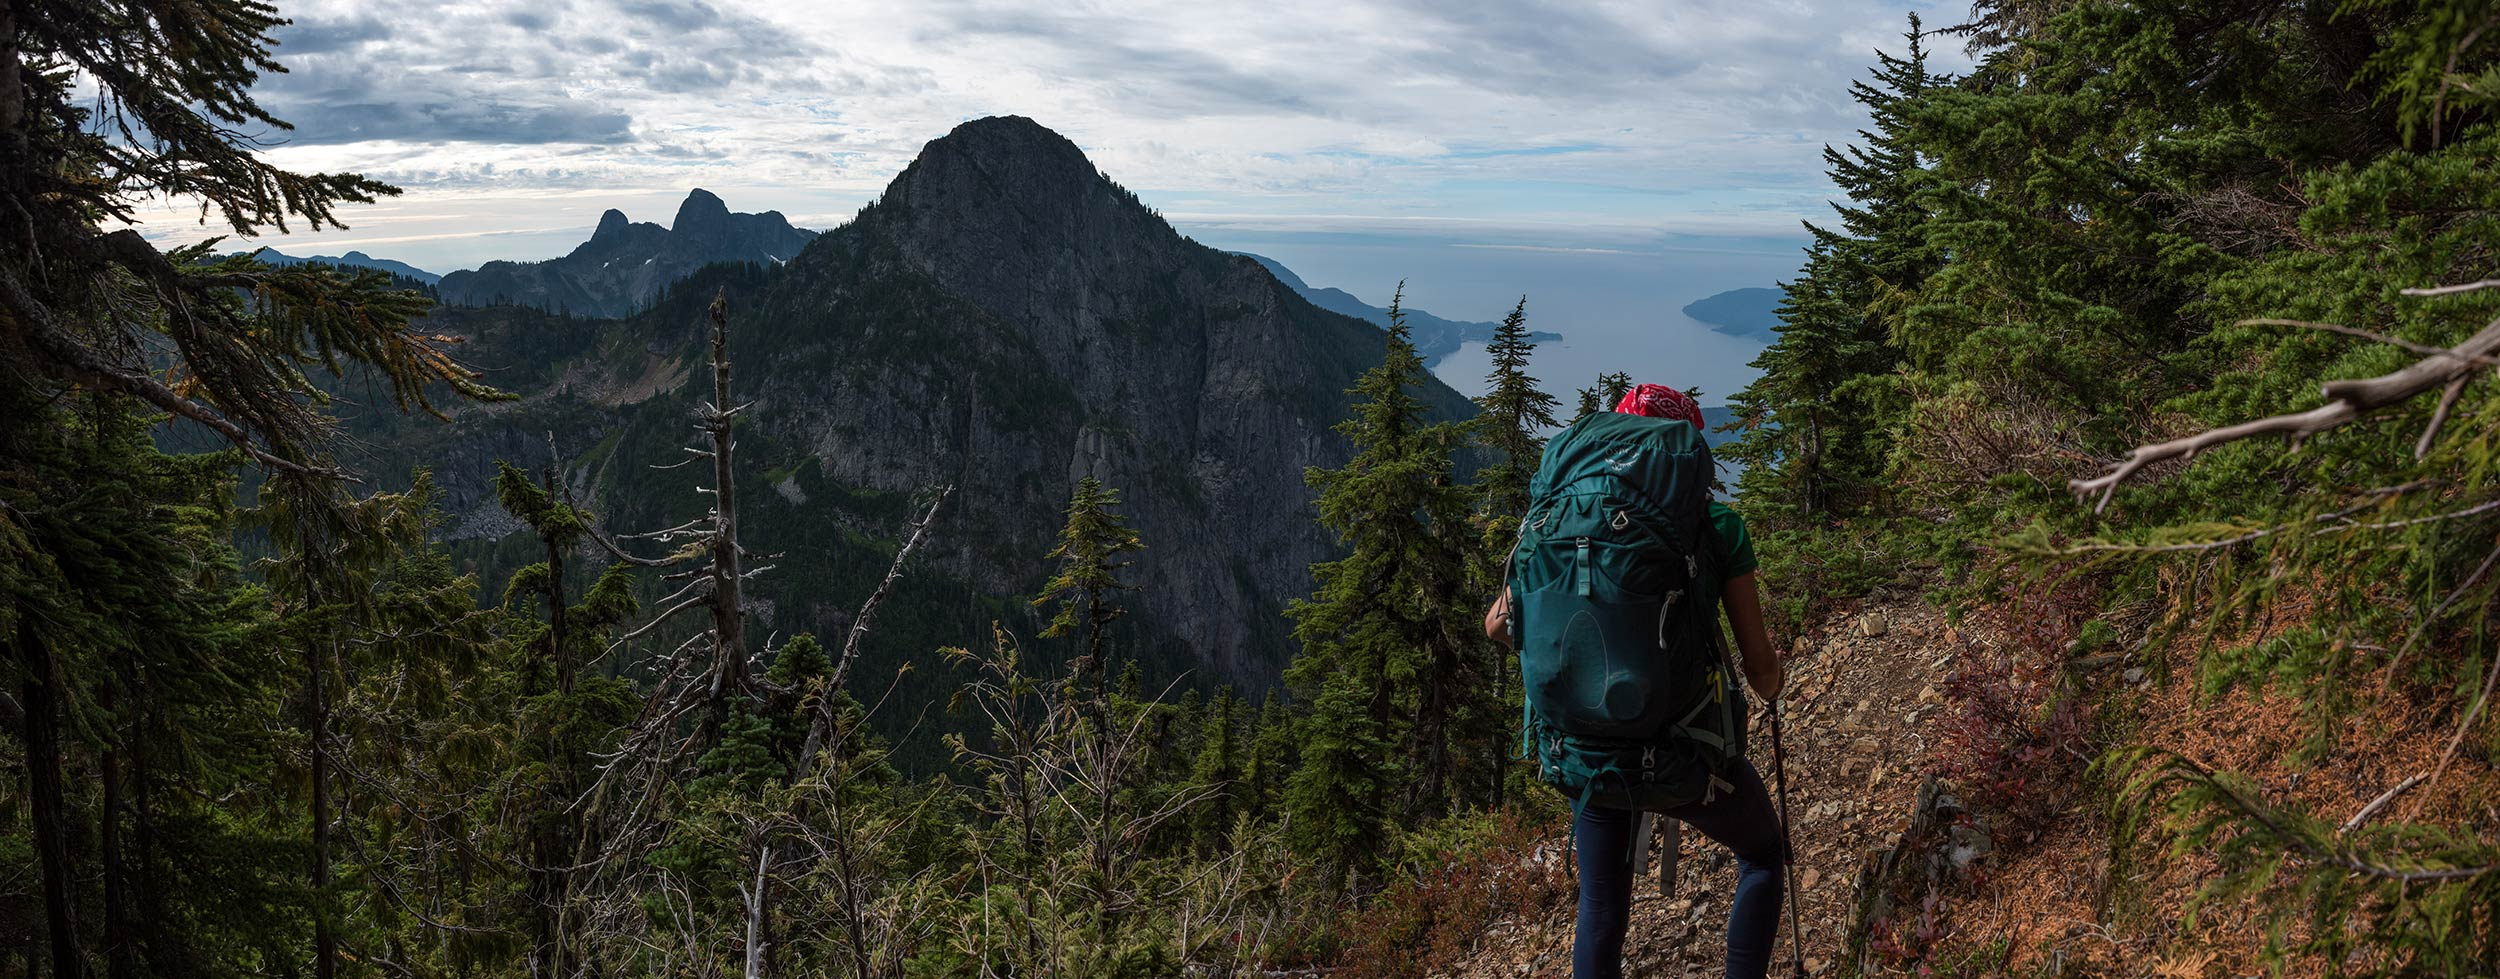 howe_sound_crest_trail_candice_harvey_lions_pano.jpg